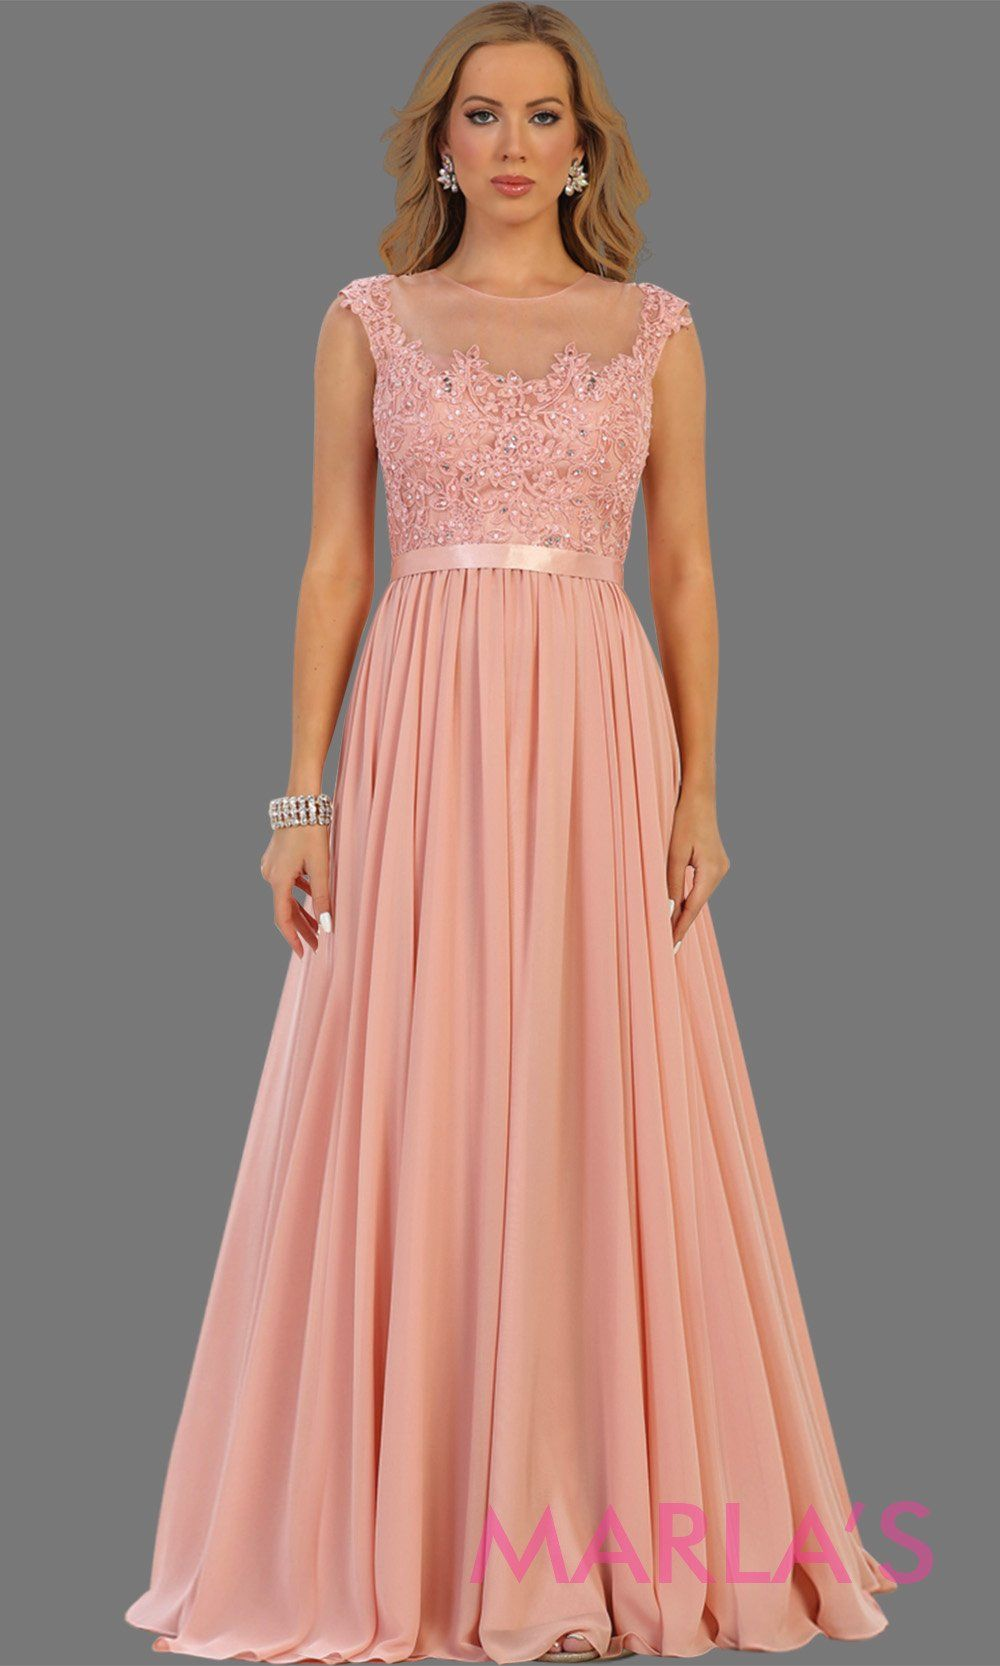 c4651018cd82 long blush pink dress with sheer lace bodice. It has a lace illusion  neckline and